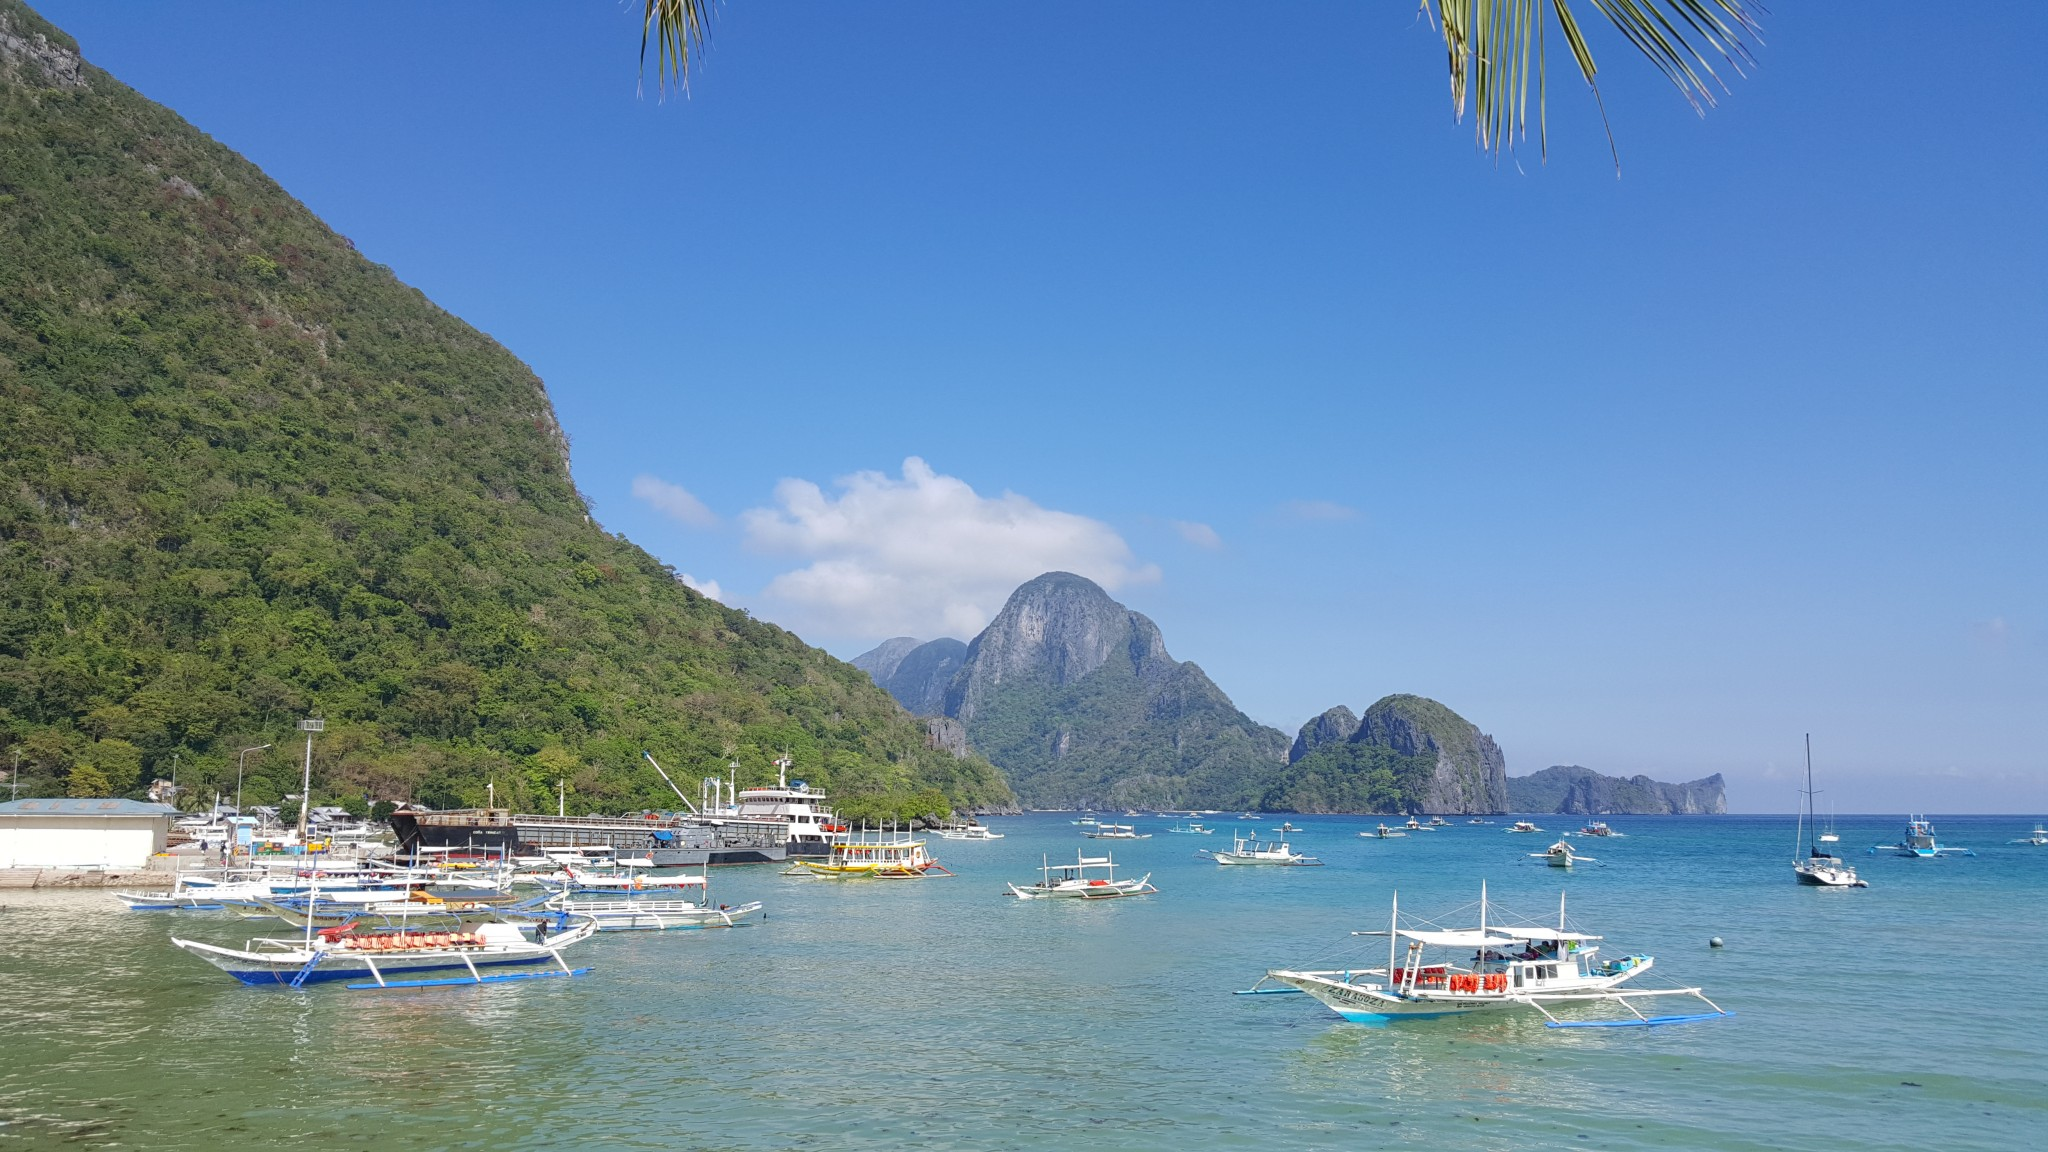 el nido single men Getting there manila to el nido you can fly straight to el nido via a chartered flight through island transvoyager inc iti's 50-seater atr aircraft offers daily flights from manila to el nido.